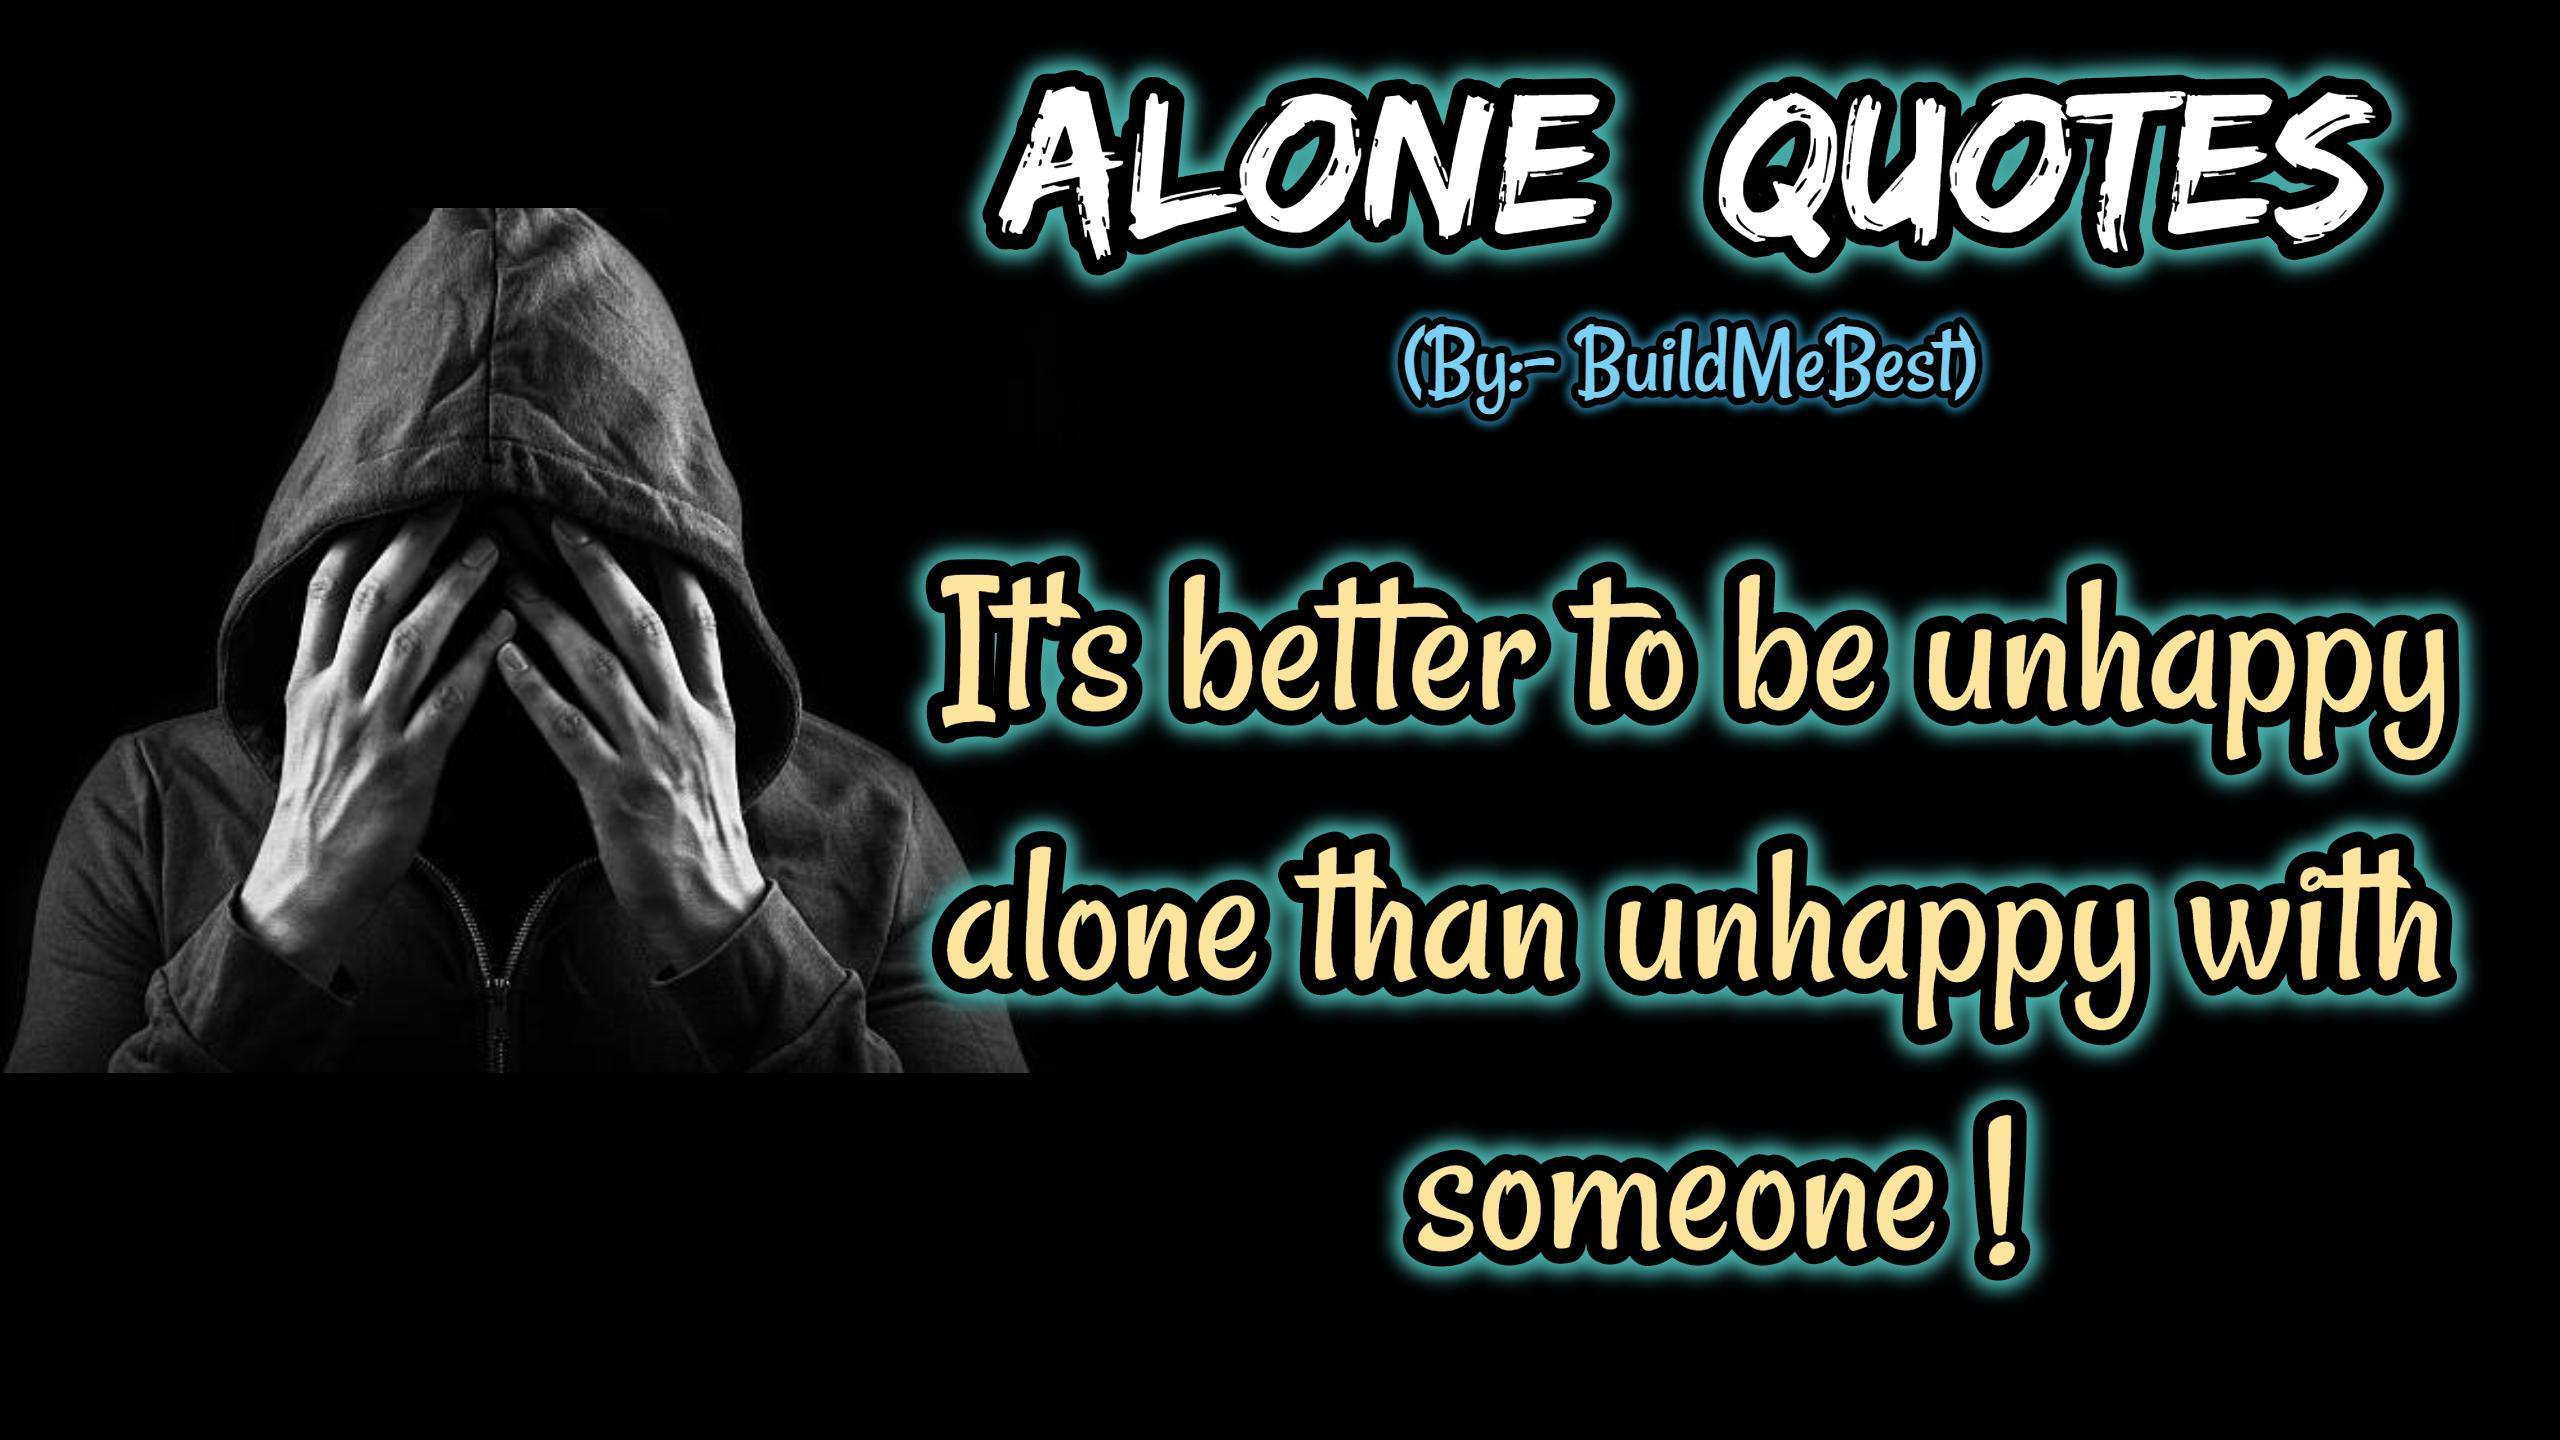 Feeling Alone Quotes - English Loneliness Status for Android